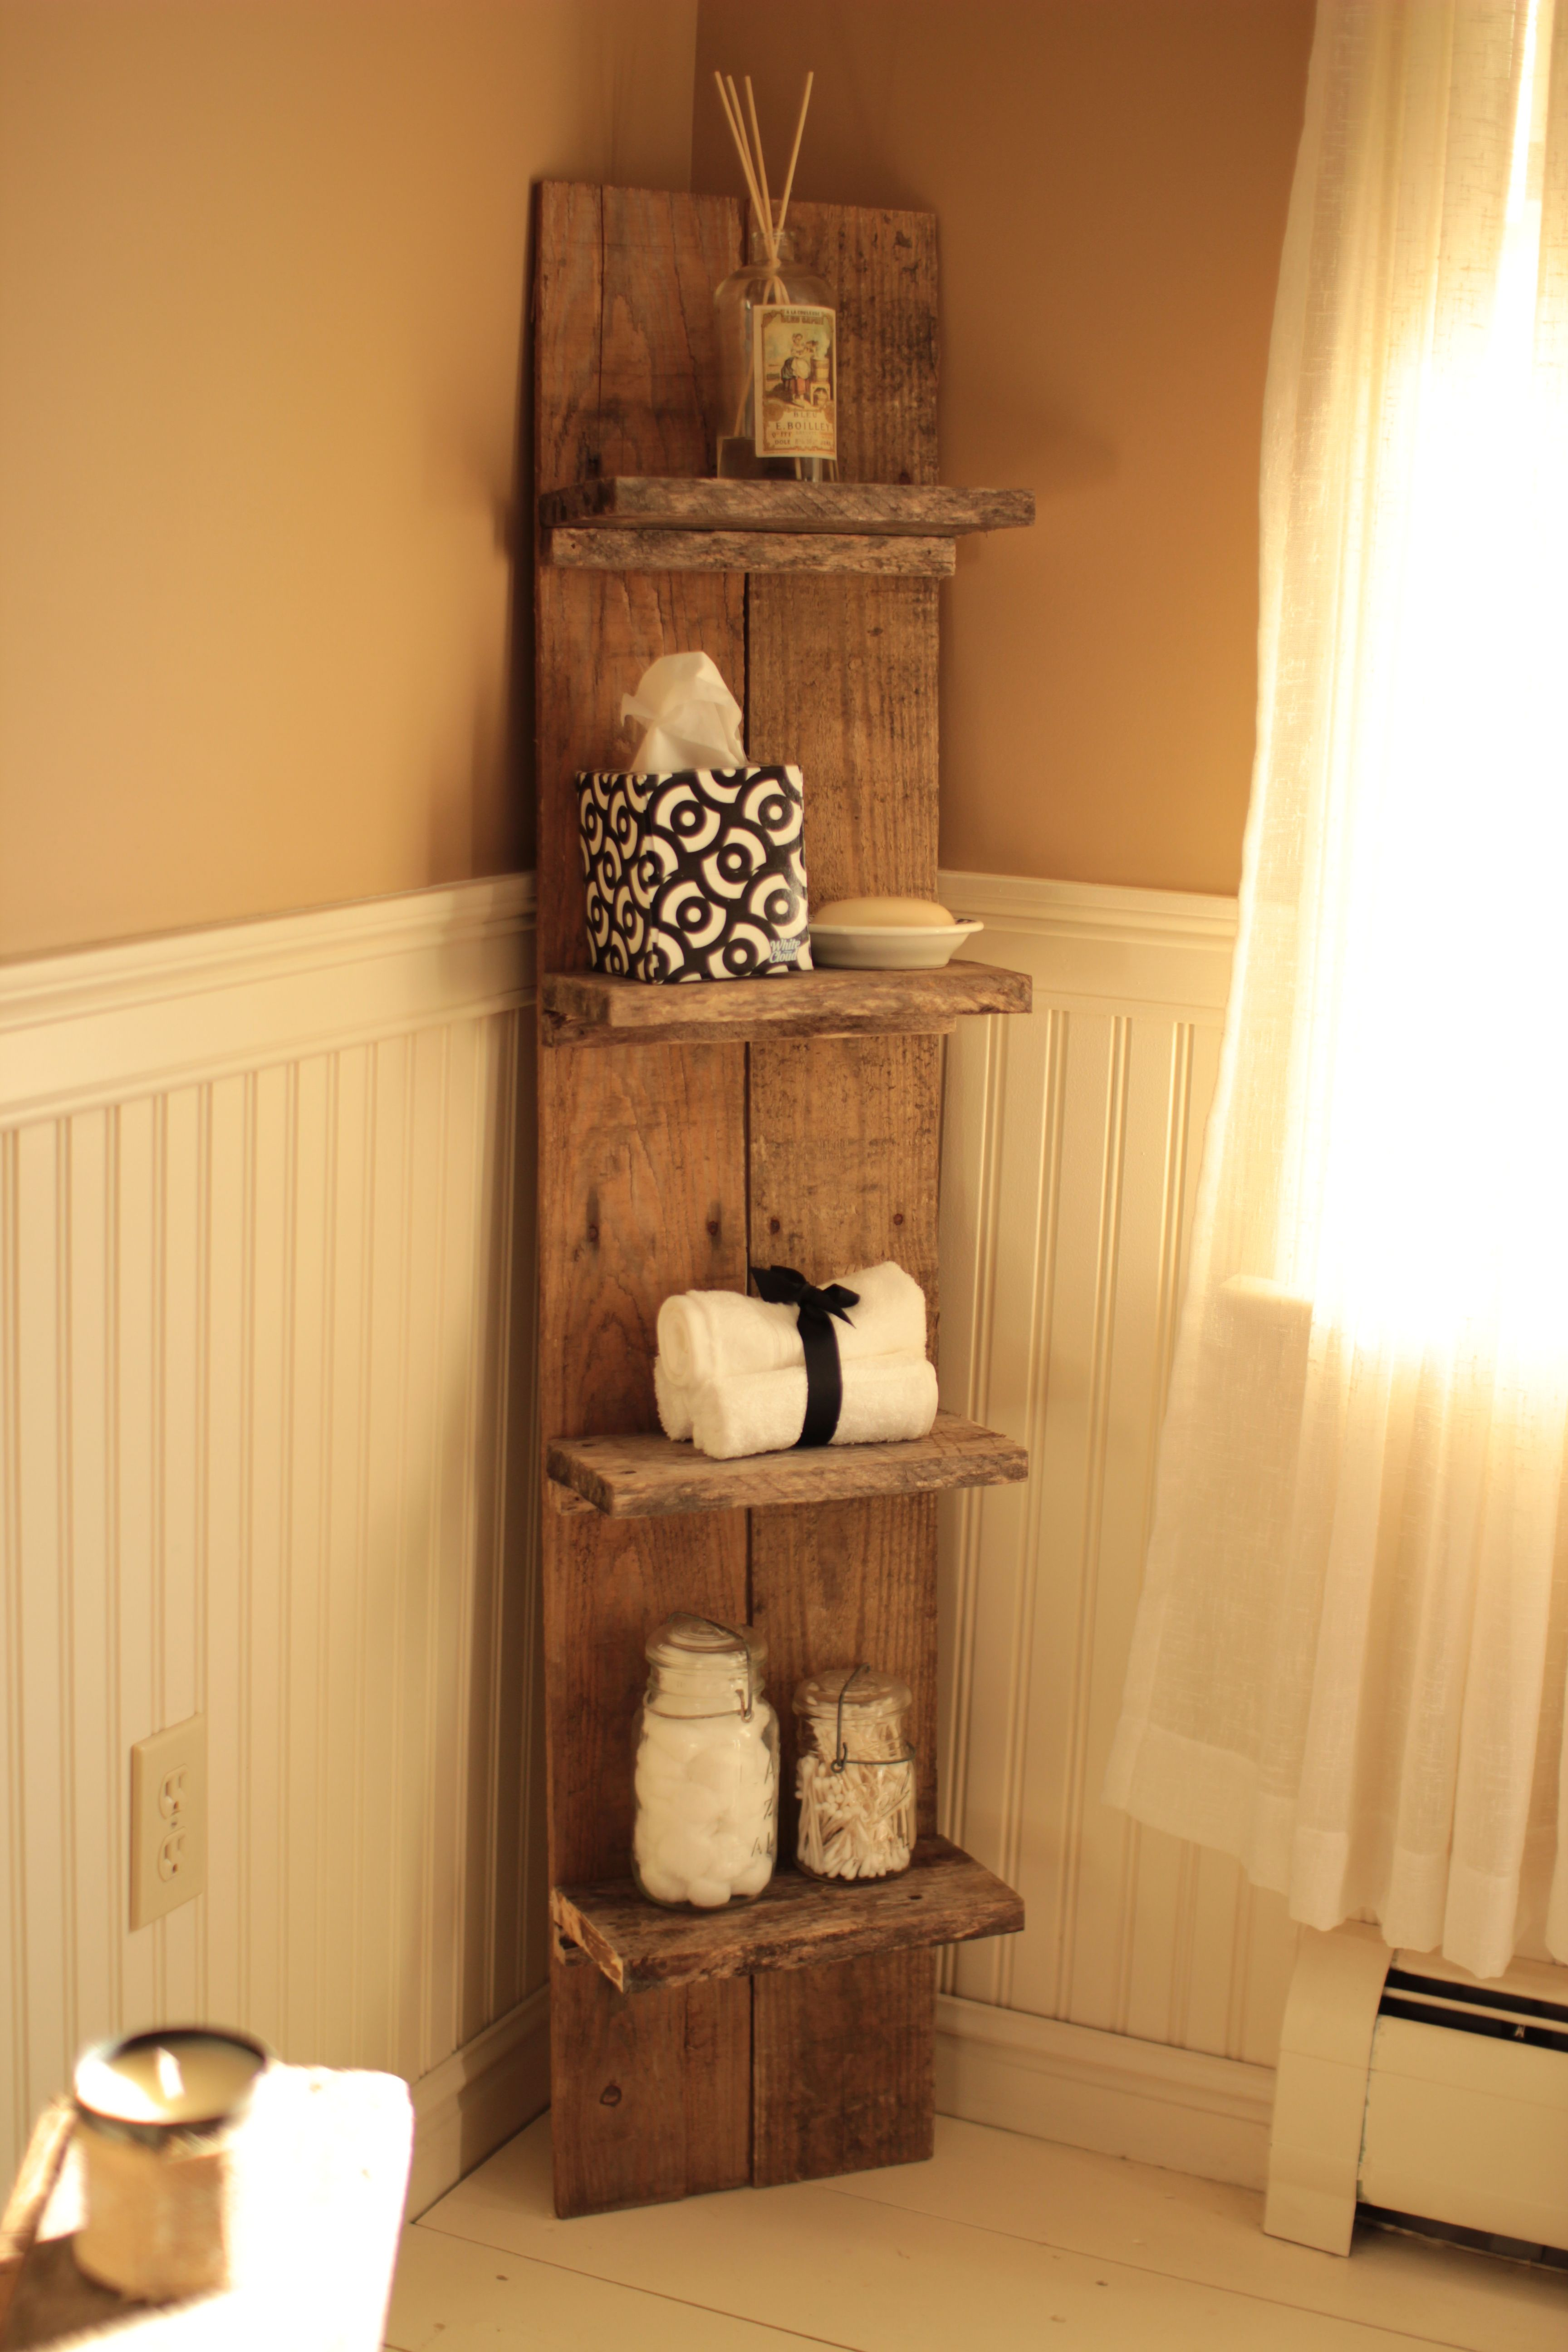 I Made A Small Pallet Shelf To Fit In A Small Bathroom Just So